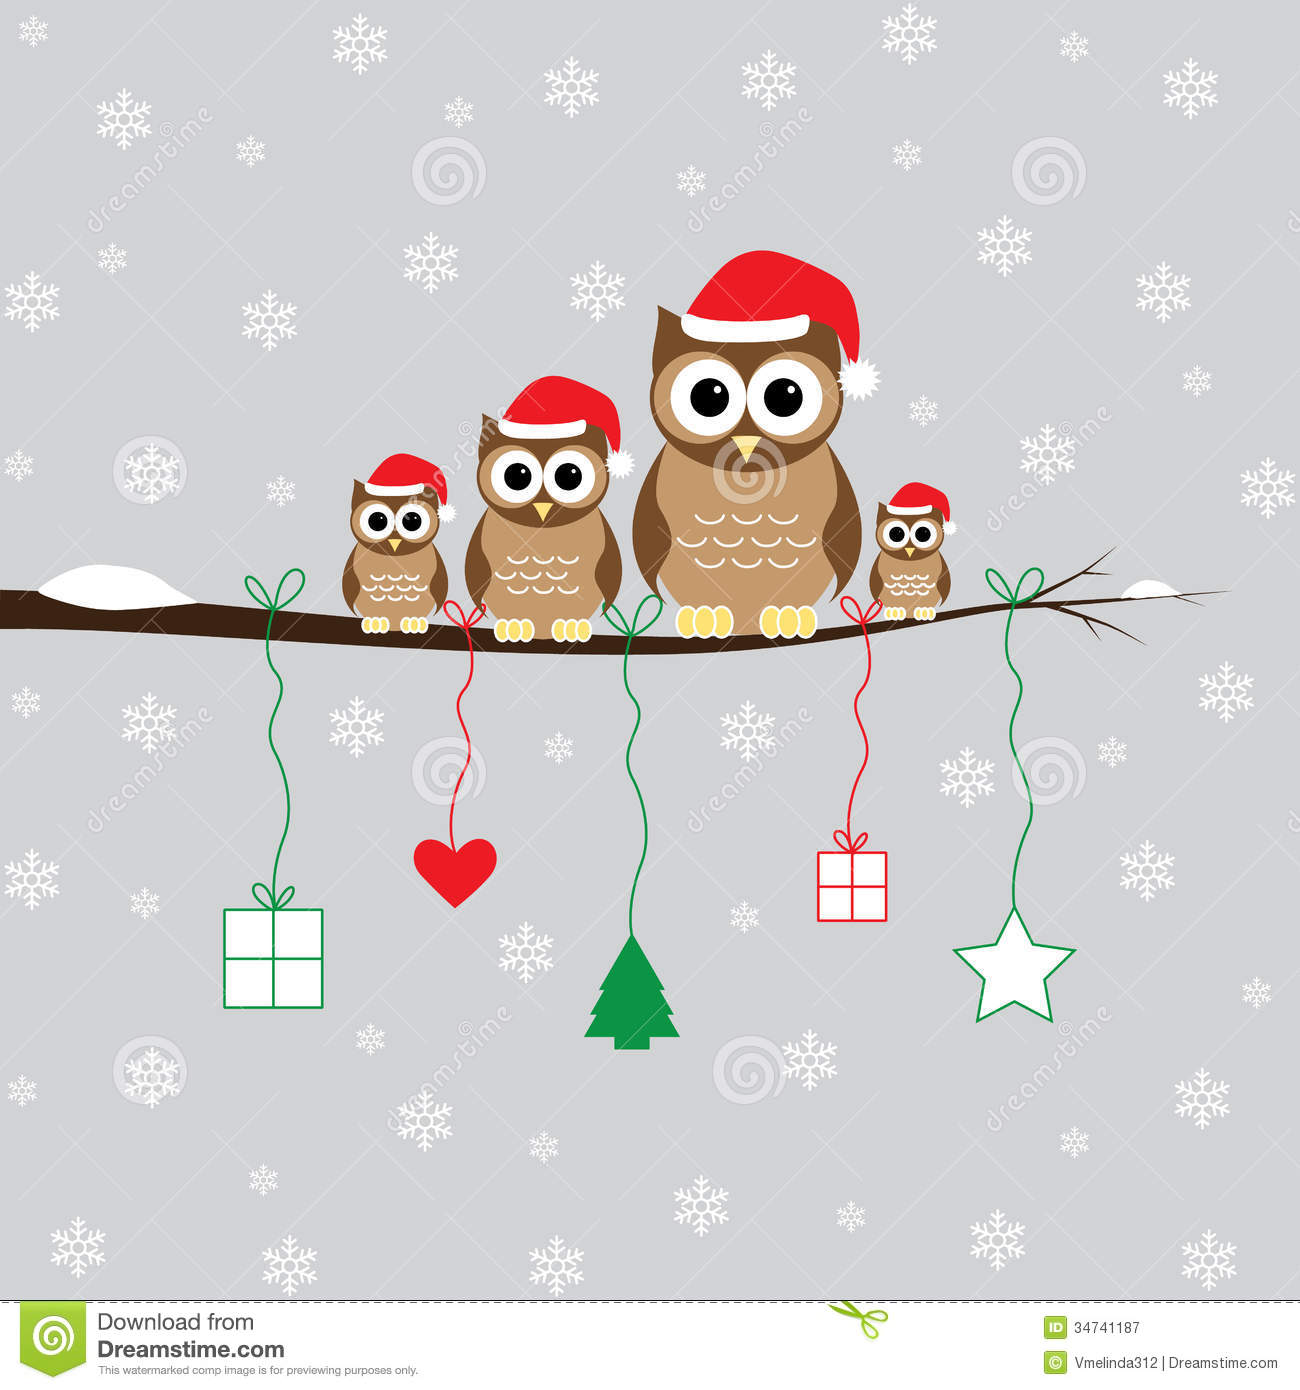 Free Owl Christmas Wallpaper - WallpaperSafari